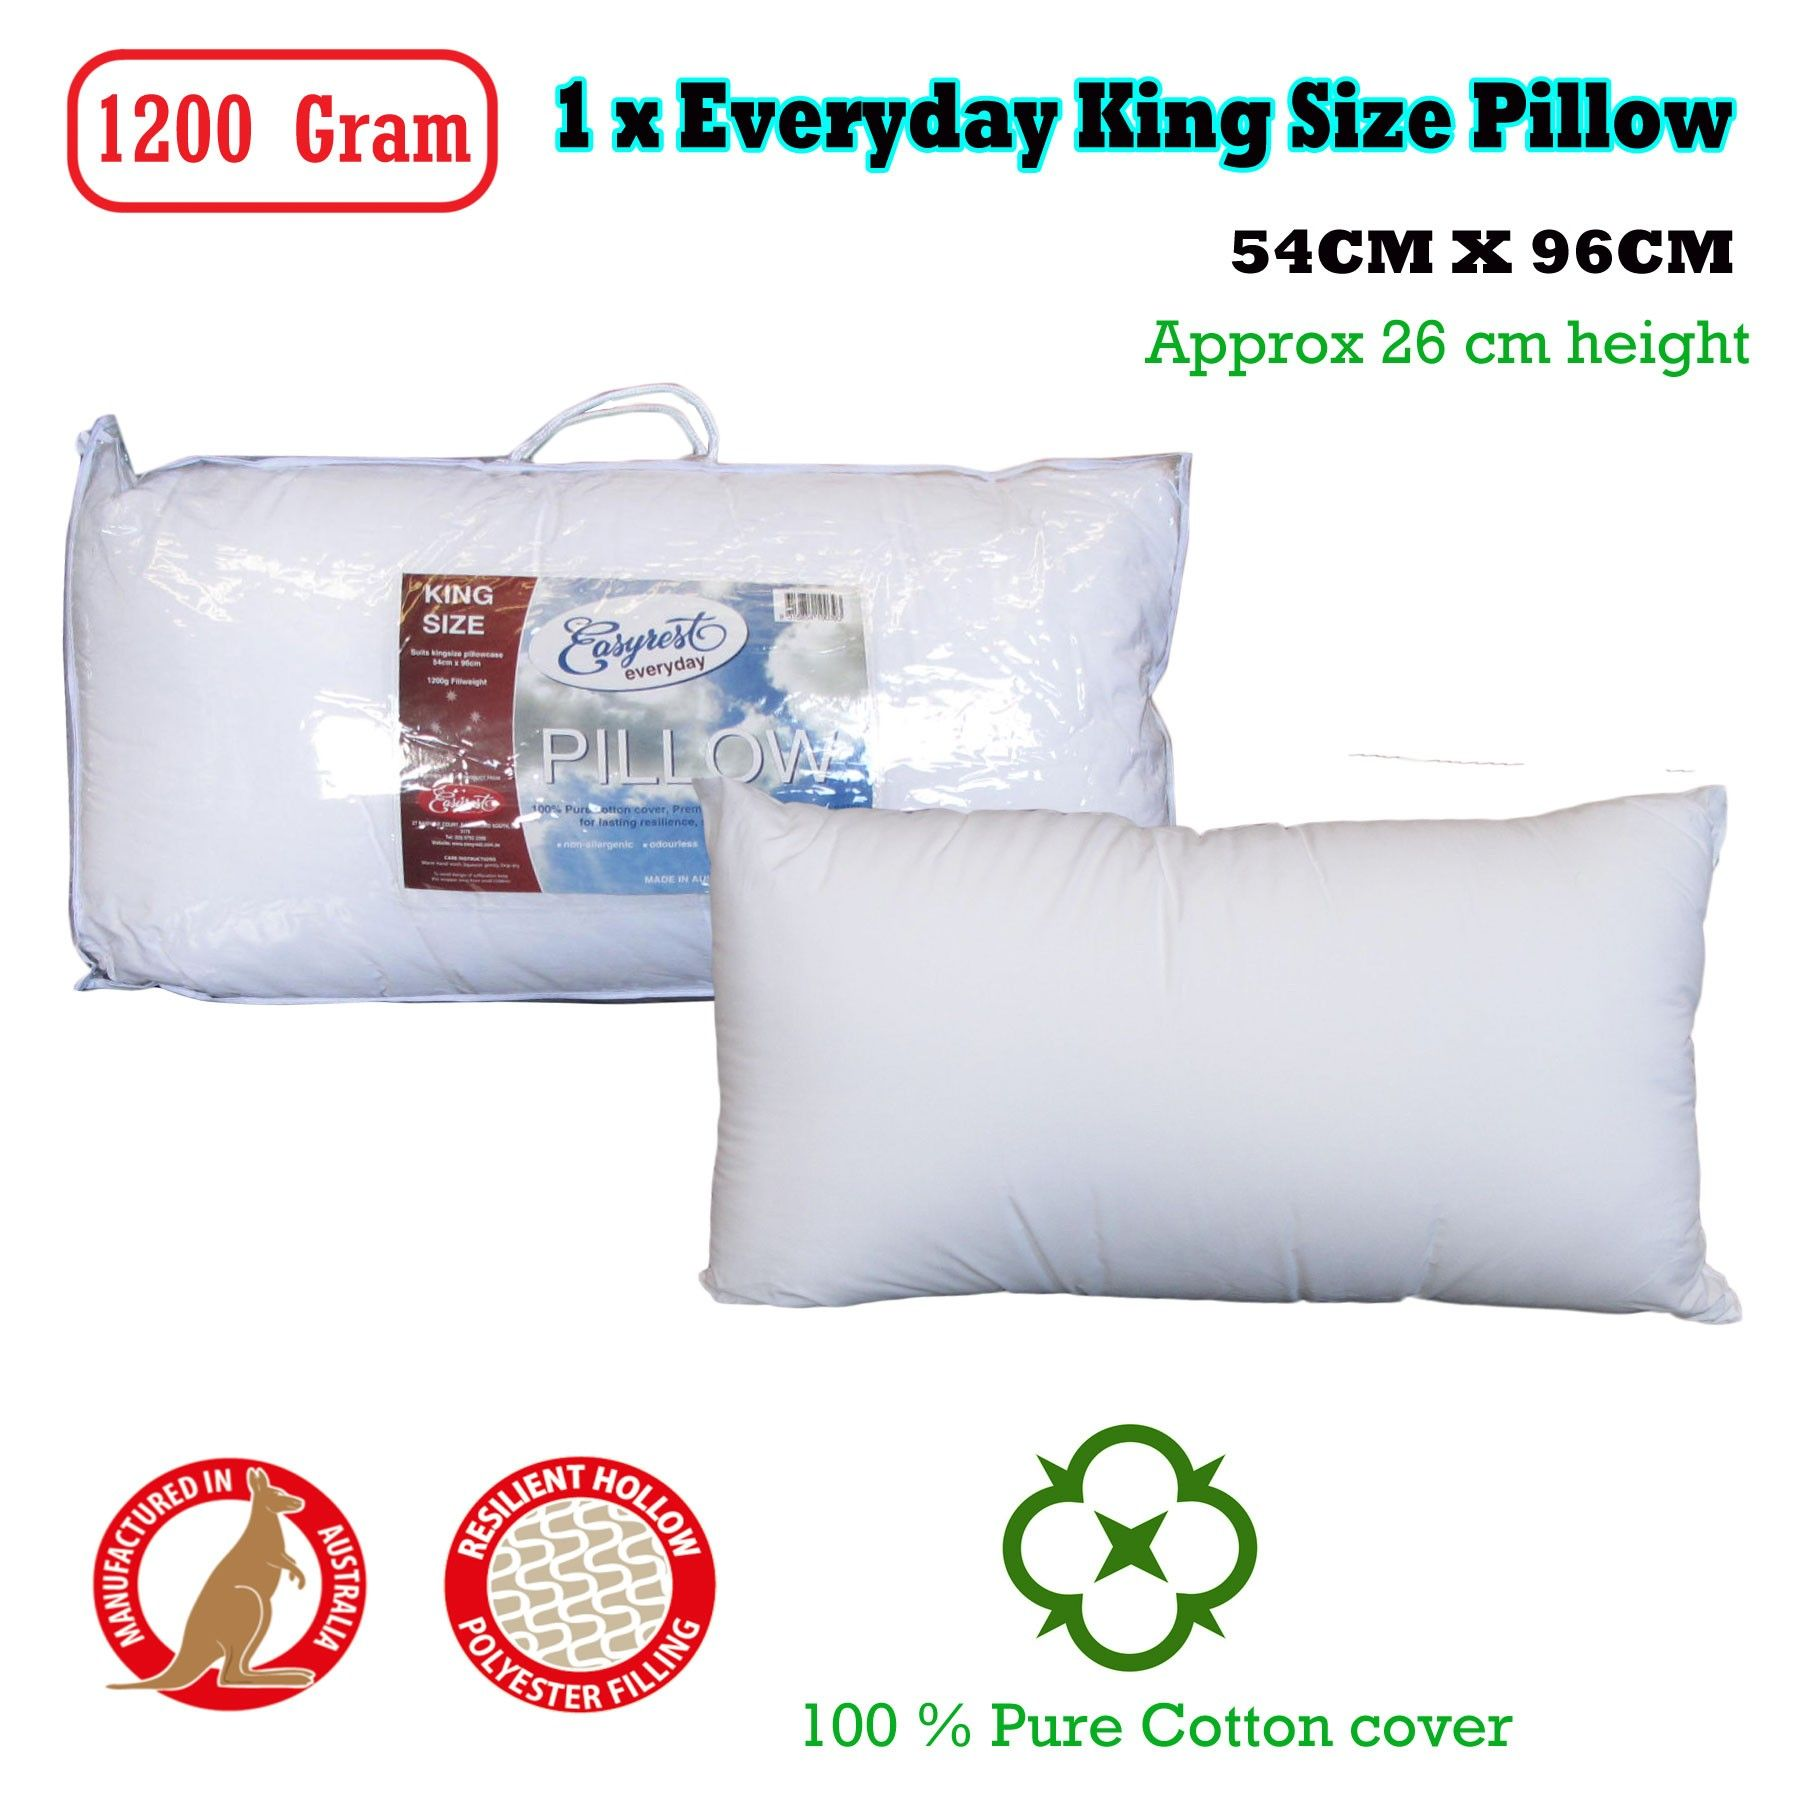 1 x Everyday King Size Pillow 54x96 cm